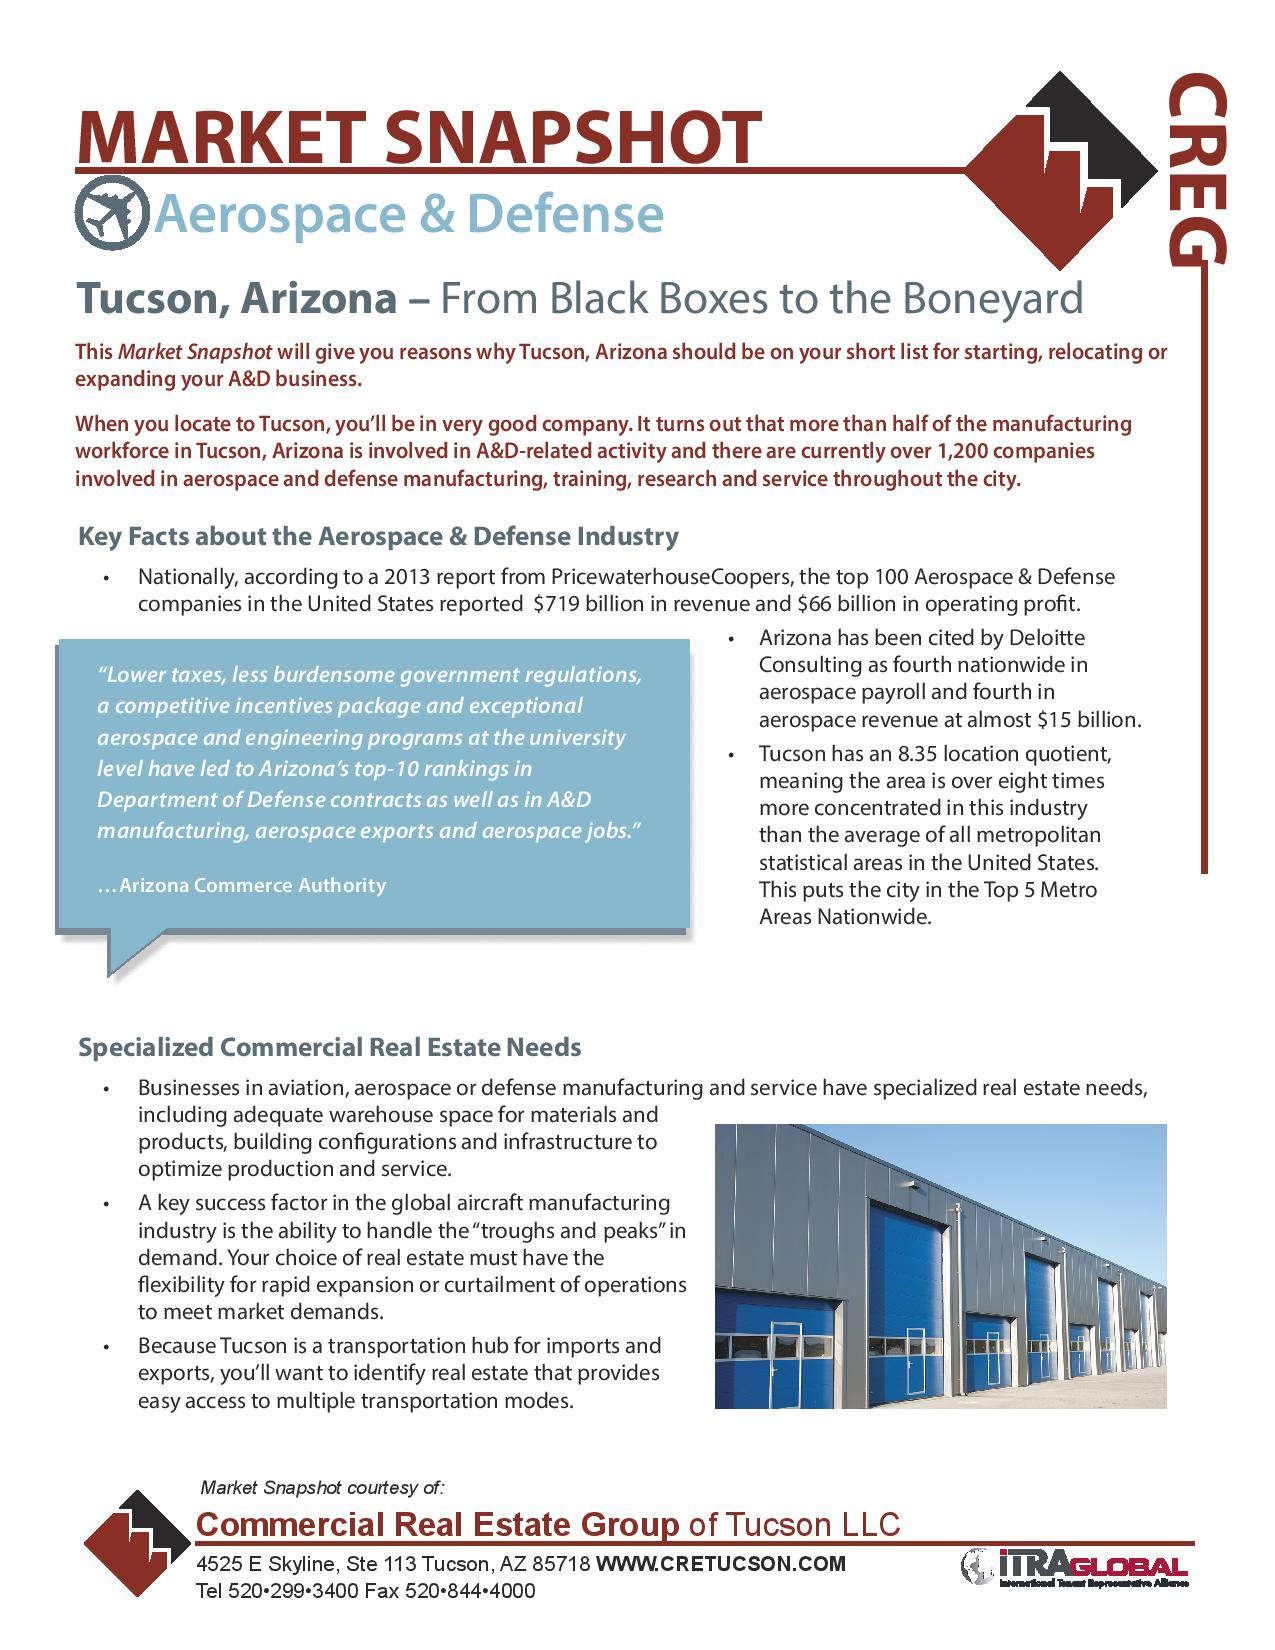 2014 Aerospace & Defence Industrial Market Snapshot for Commercial Real Estate Group of Tucson Arizona by Michael Coretz (IMG)